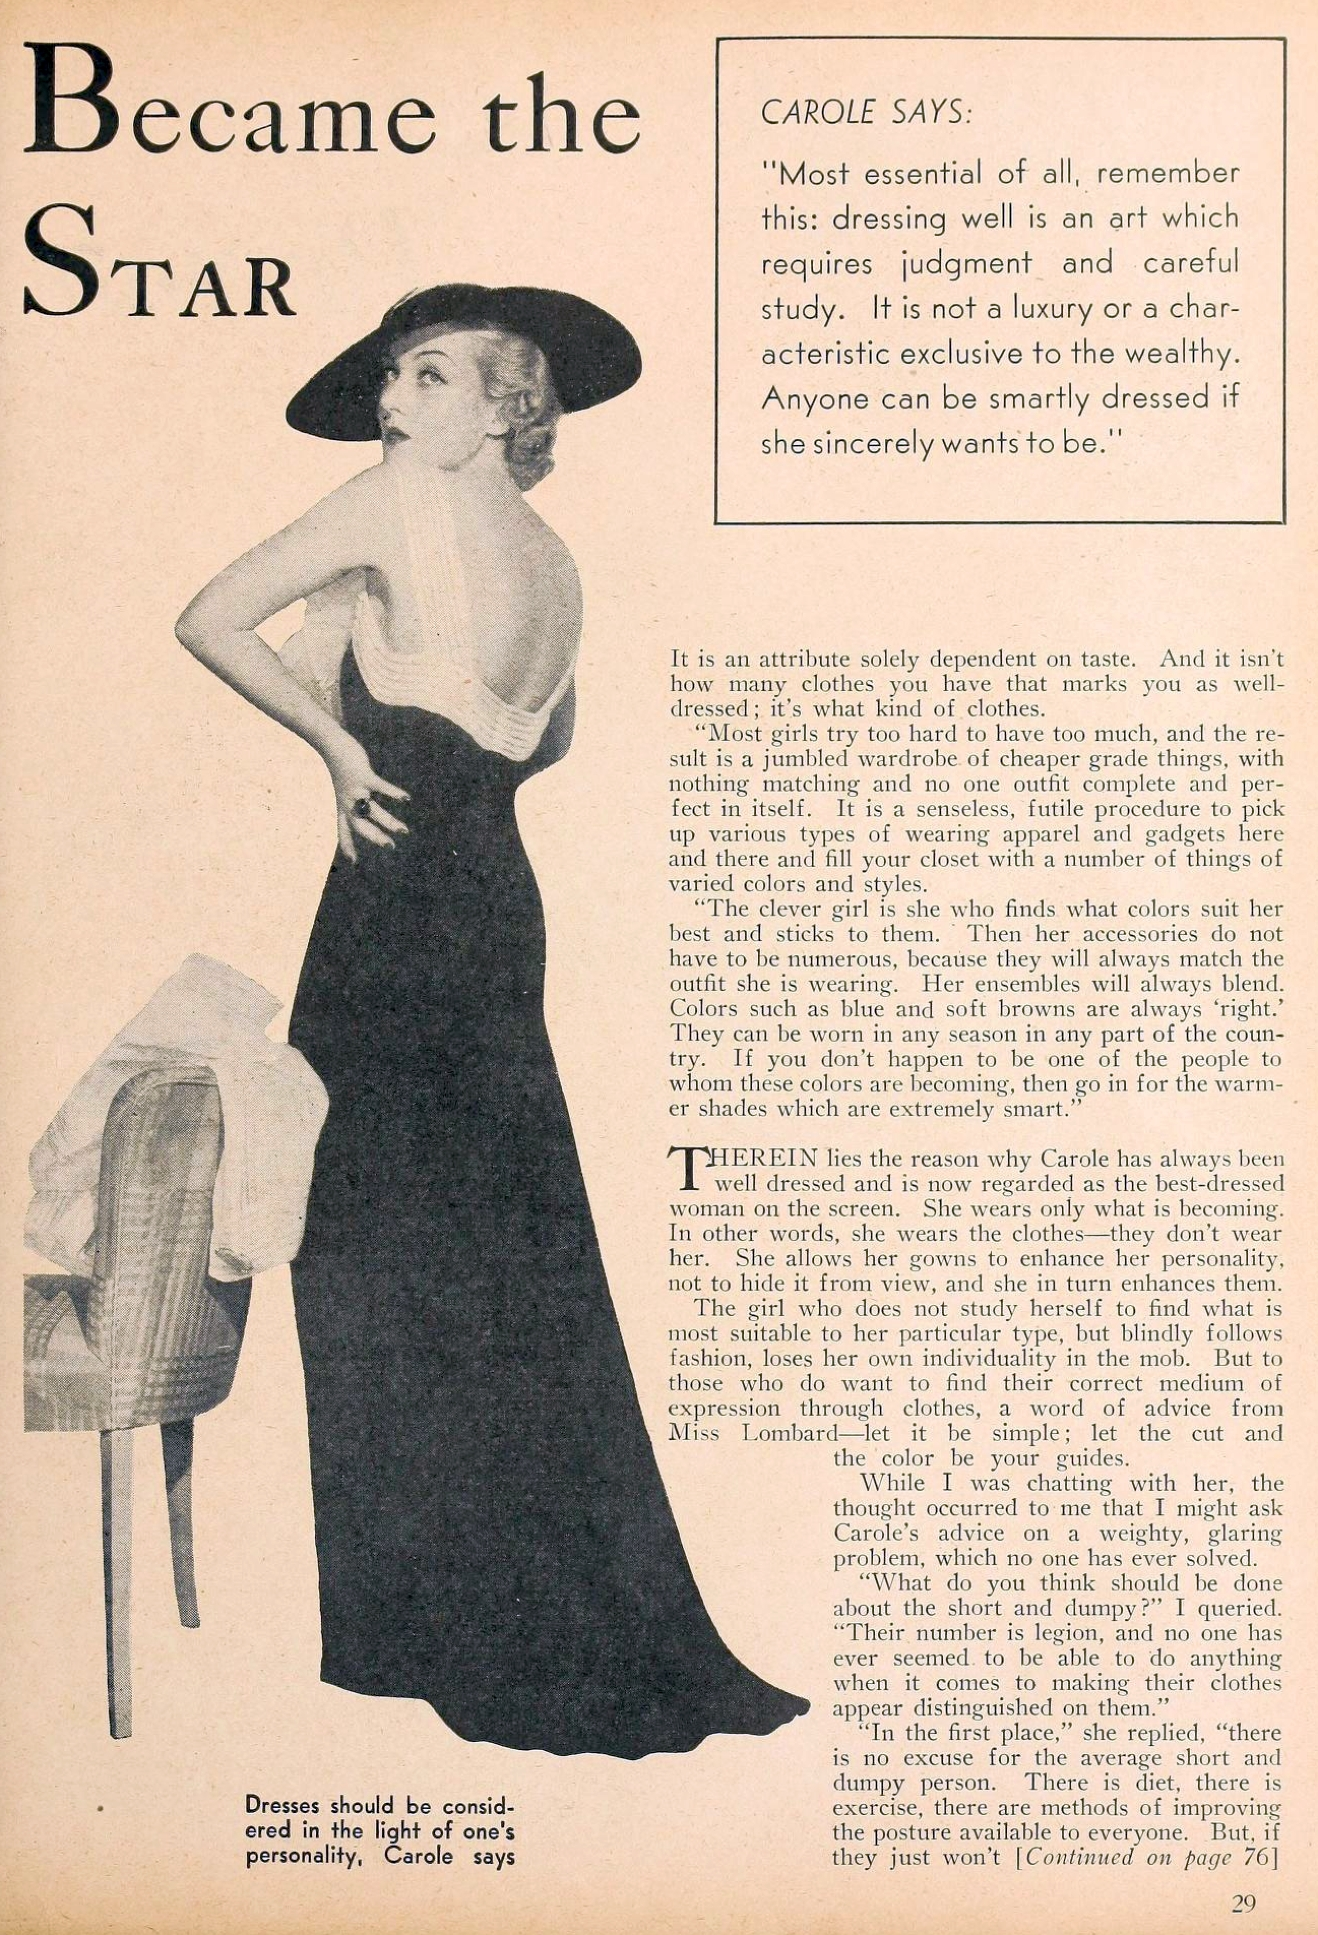 carole lombard movie classic may 1935 best dressed star 01a